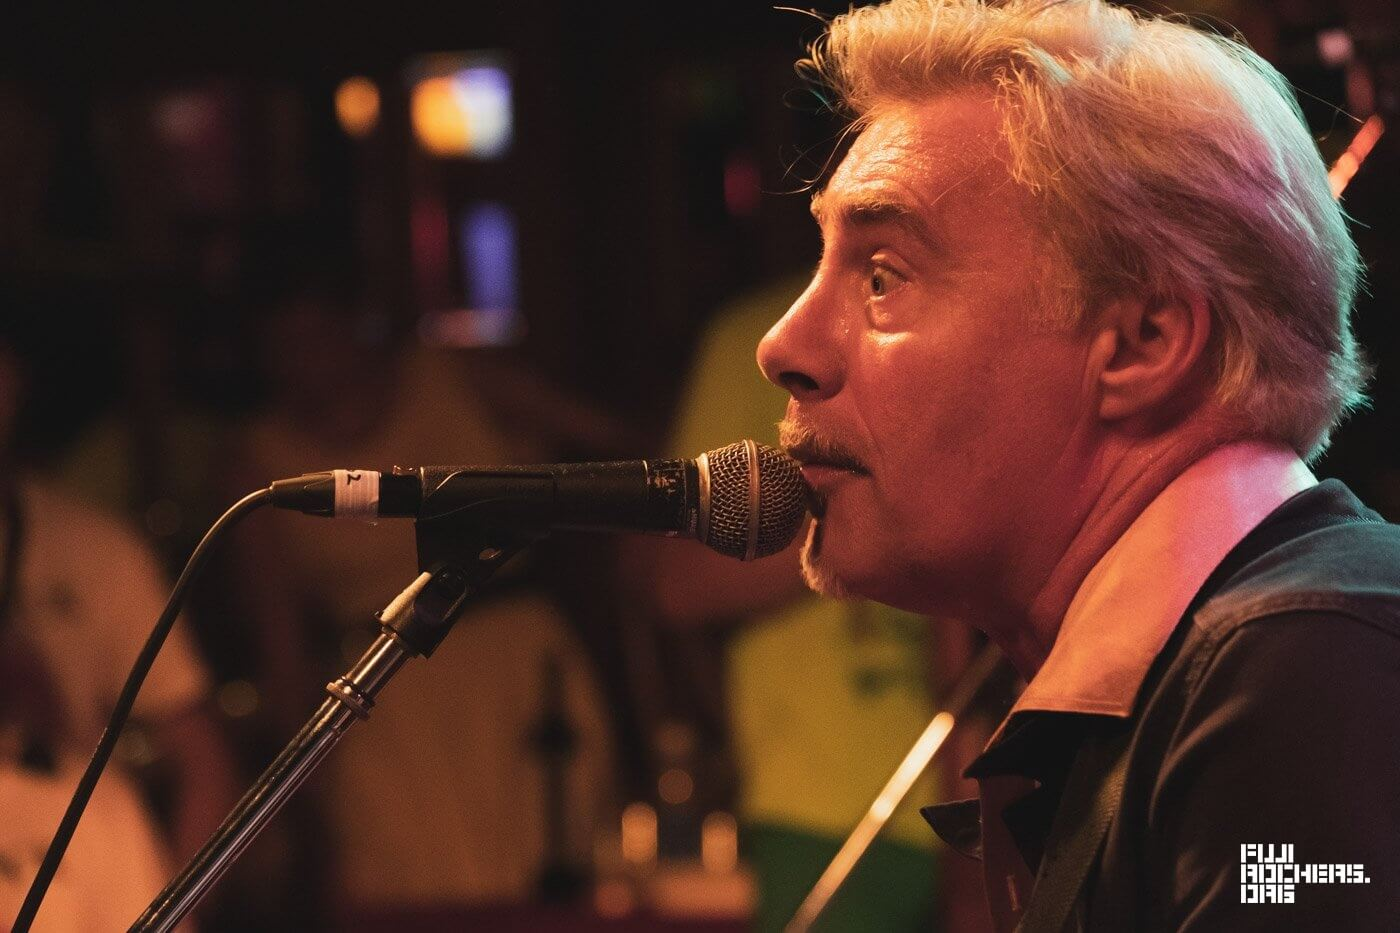 GLEN MATLOCK AND THE TOUGH COOKIES featuring EARL SLICK